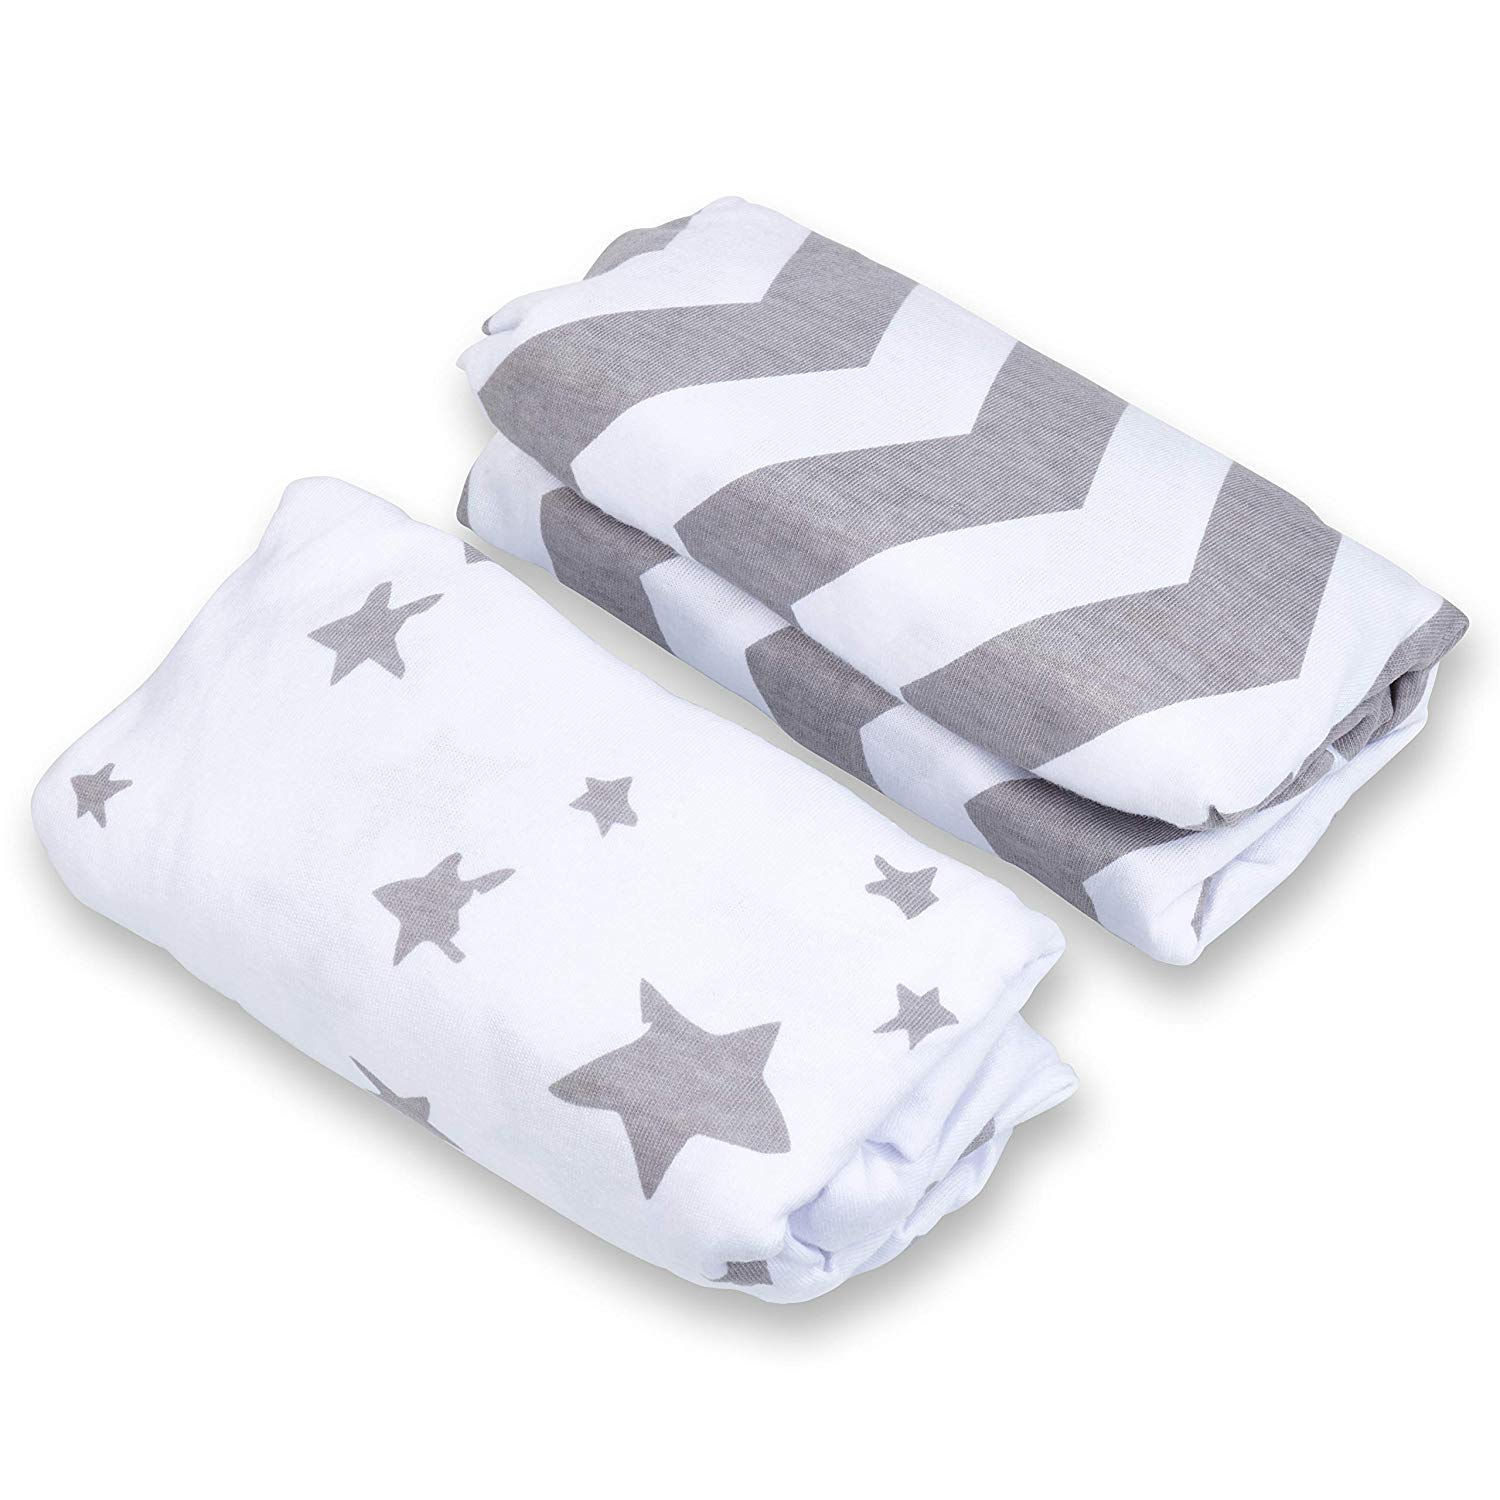 2 Pack Craddle Sheets Changing Pad Cover Set 100/% Jersey Cotton Fabric Unisex Stylish Gray Chevron and Star Prints.